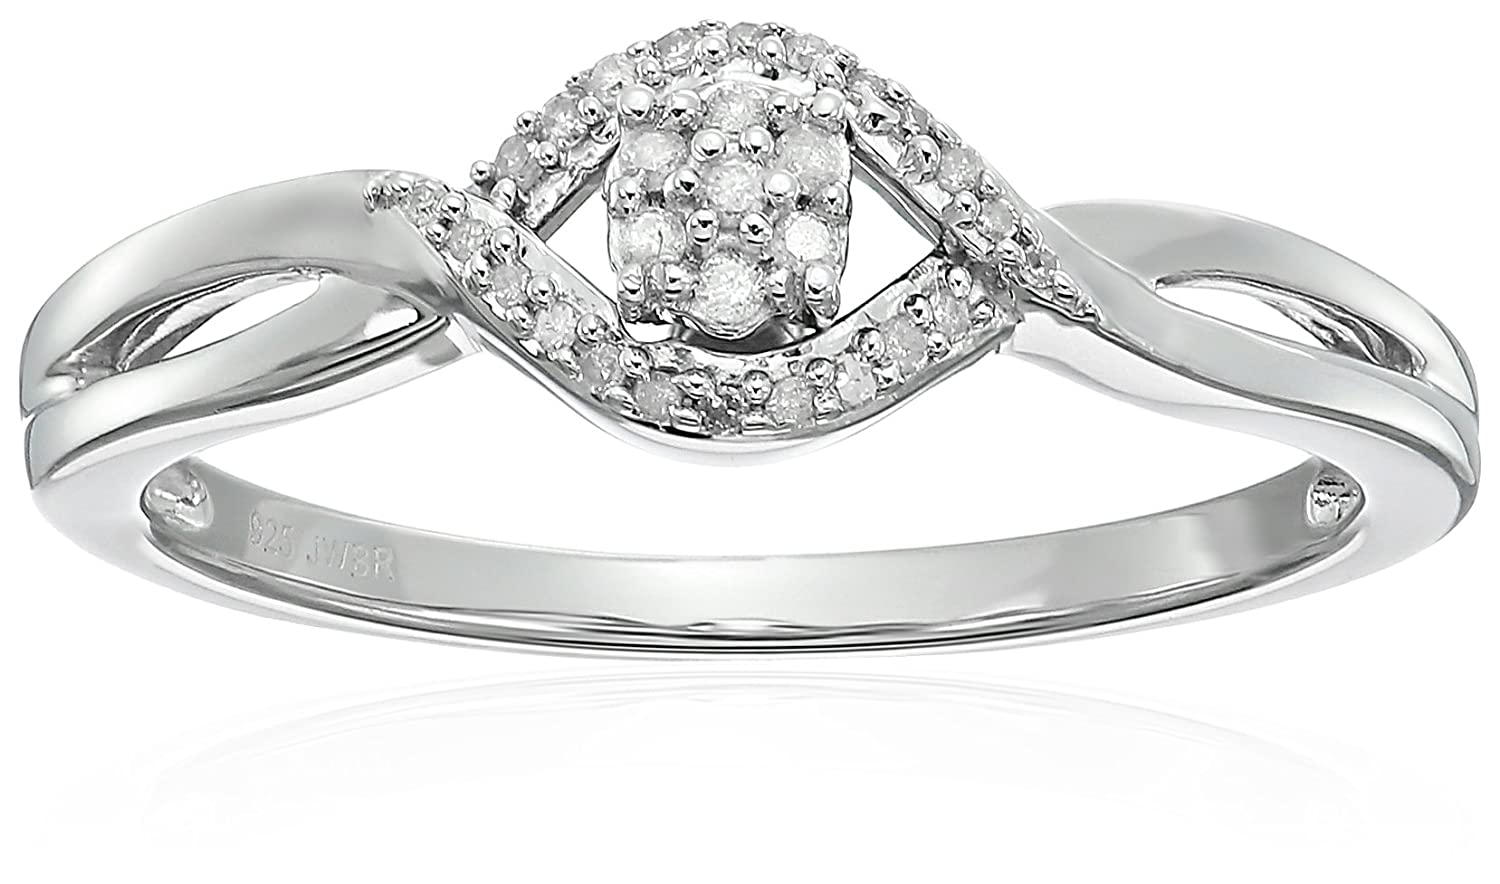 Sterling Silver Diamond Bypass Promise Ring, Size 7 (1/10cttw, I-J Color, I2-I3 Clarity) Amazon Collection 804571A/STGSIL/M5/US7